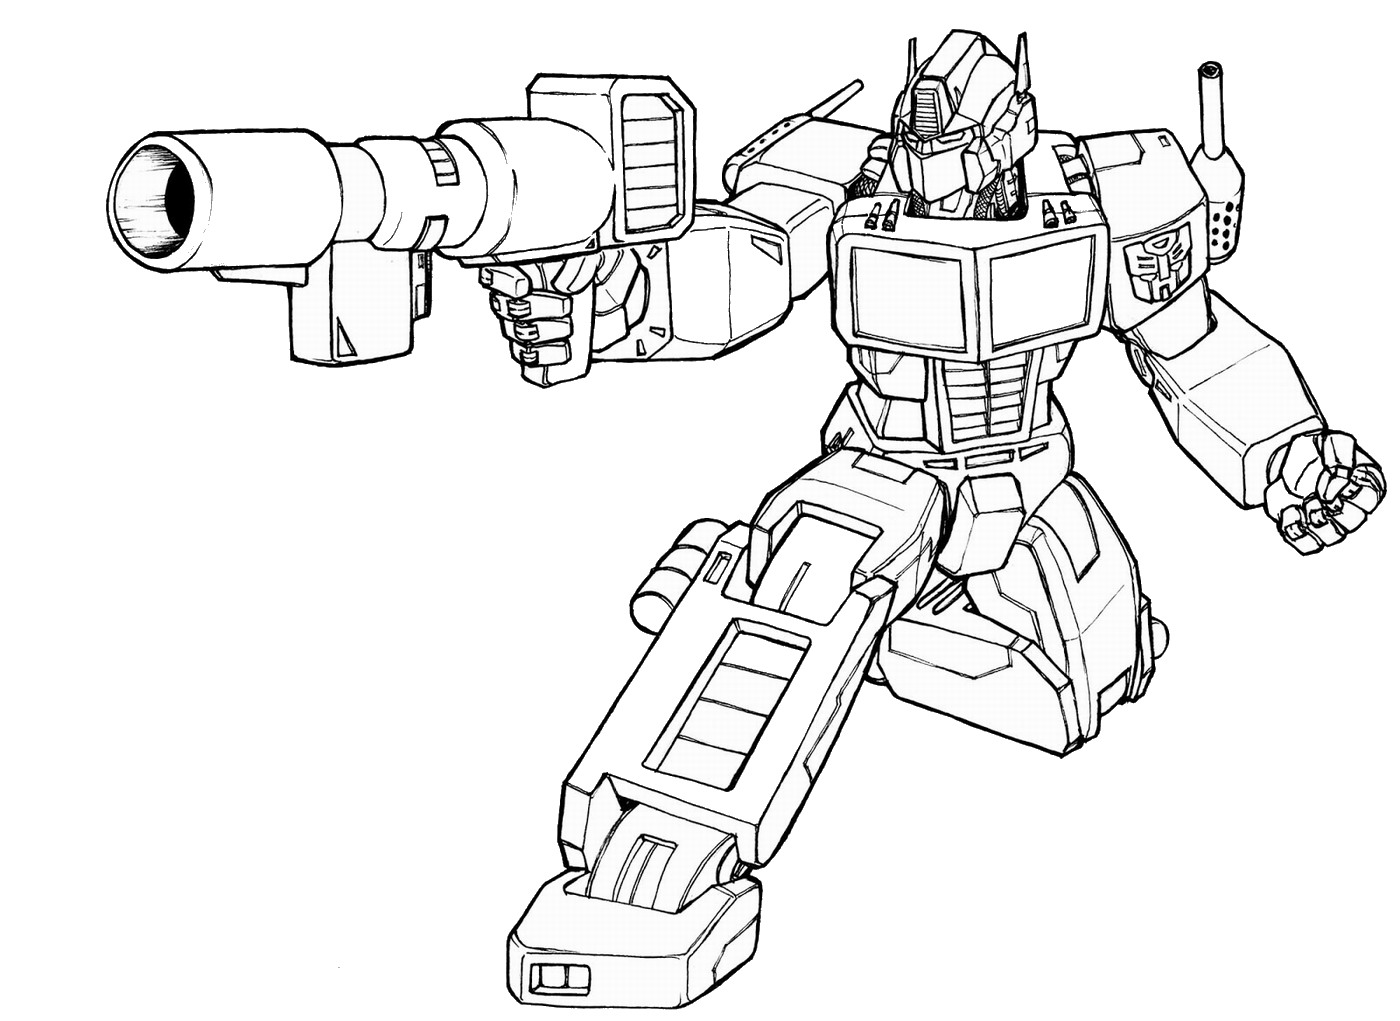 transformers fighting coloring pages - photo#34